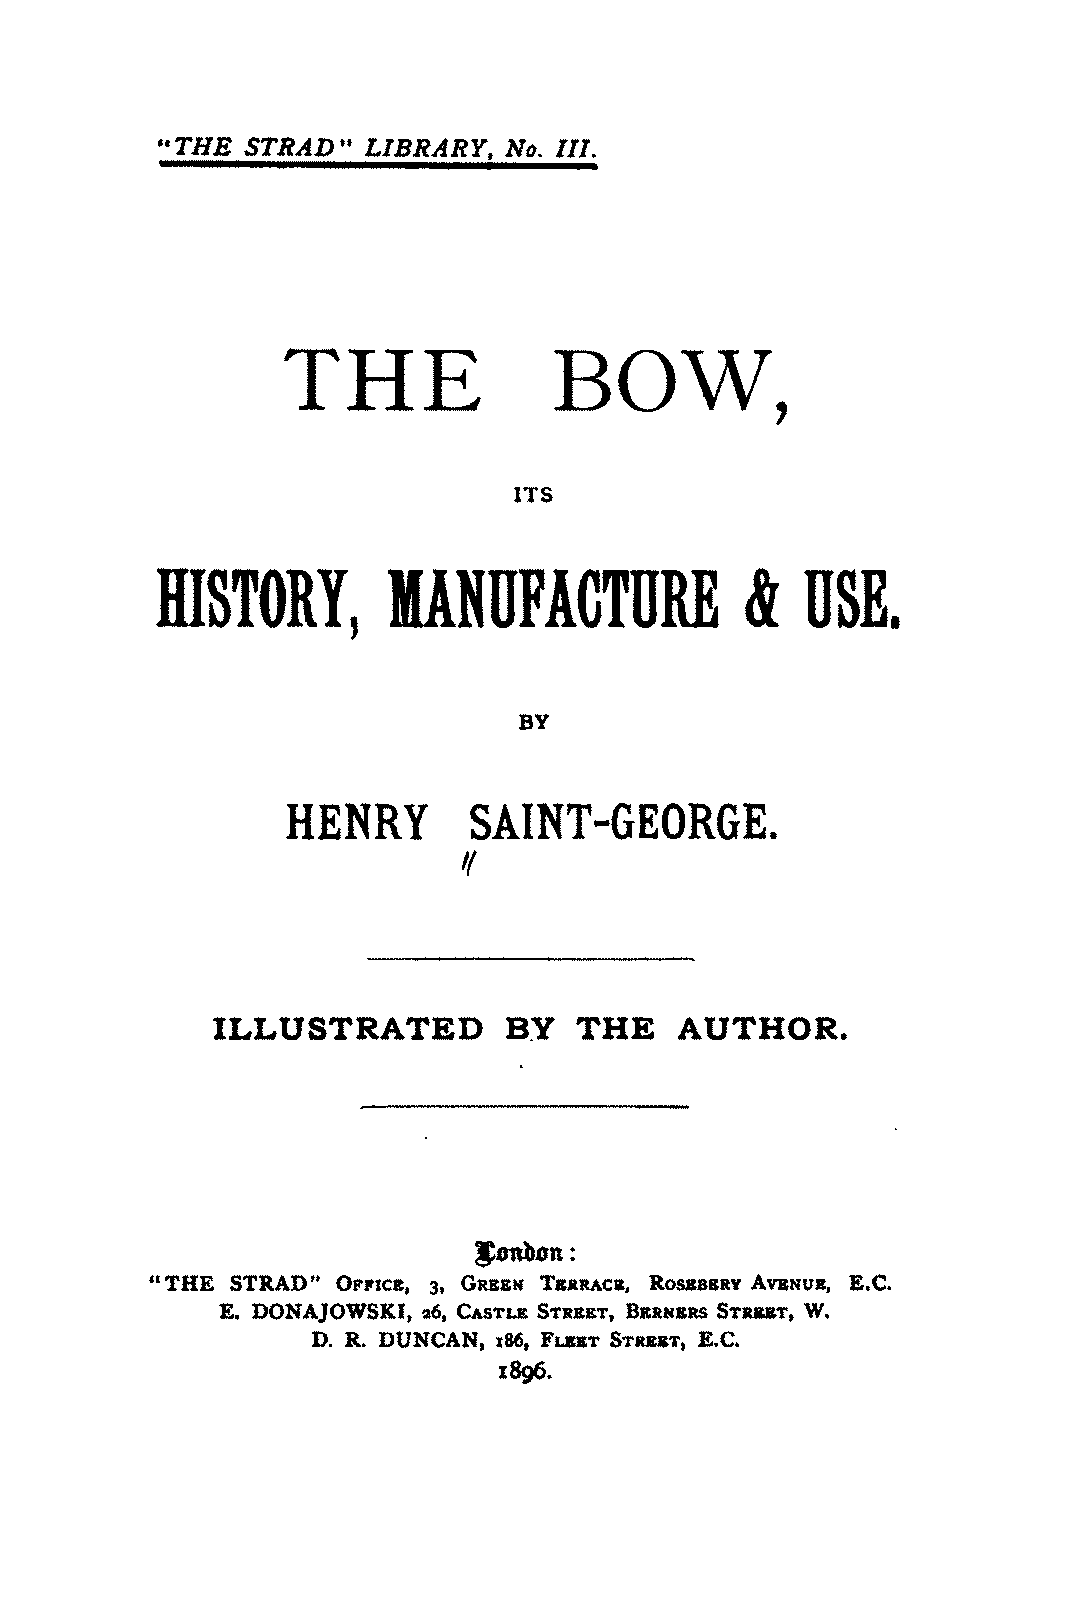 PMLP130742-Saint-George.Henry - The Bow, its History, Manufacture & Use (1896).pdf